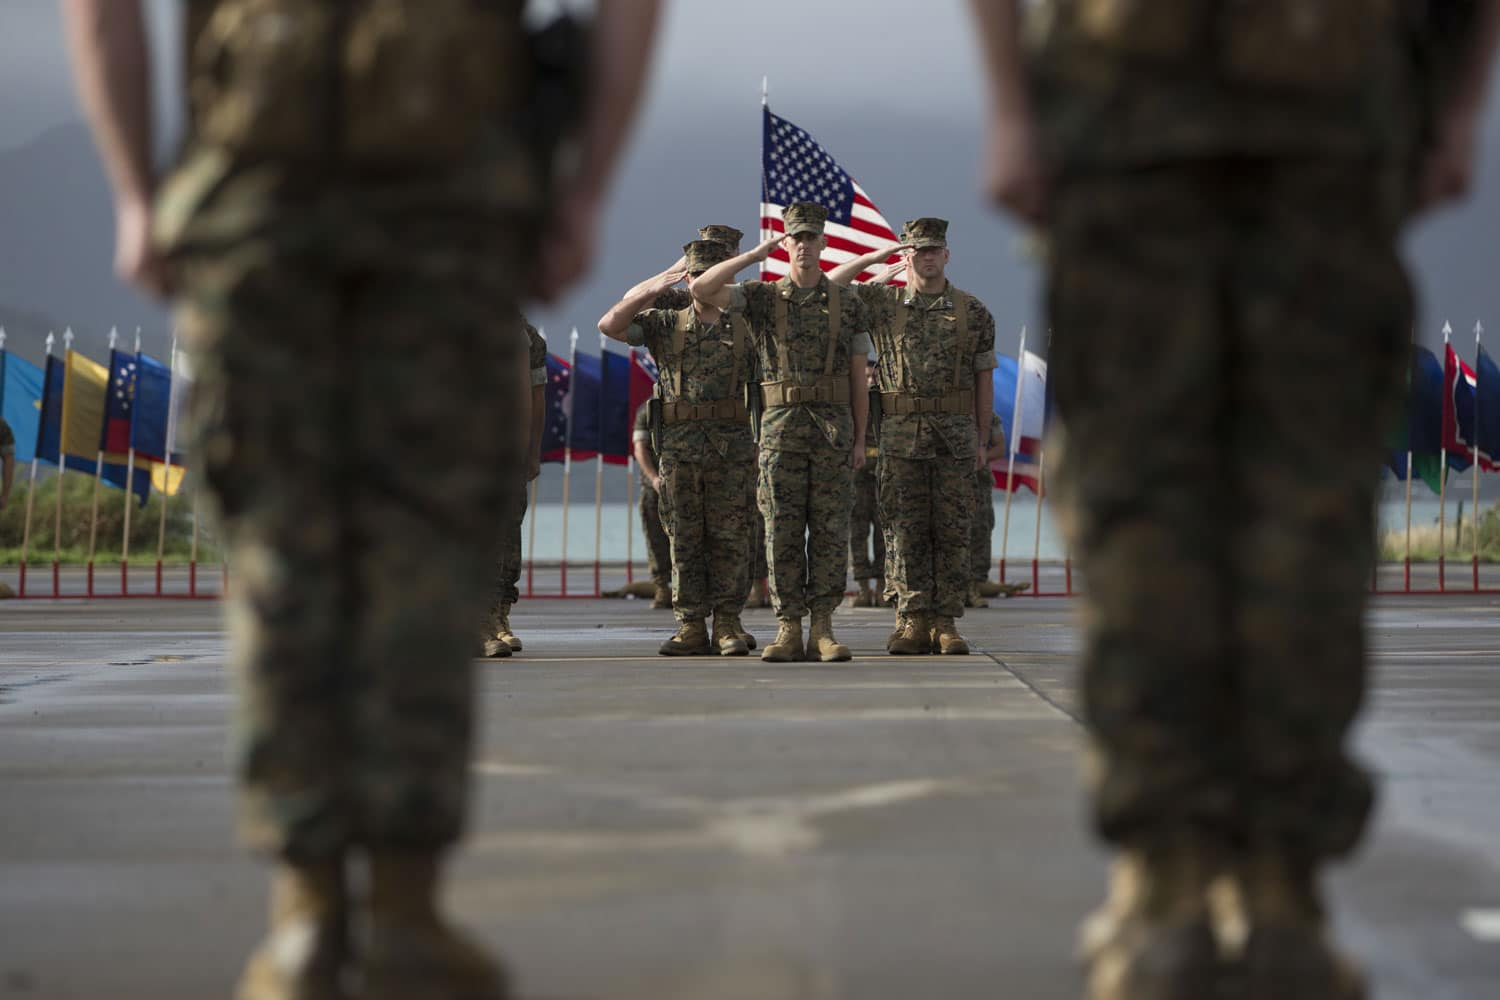 Marine Heavy Helicopter Squadron 463 Change of Command salute aboard Marine Corps Base Hawaii.